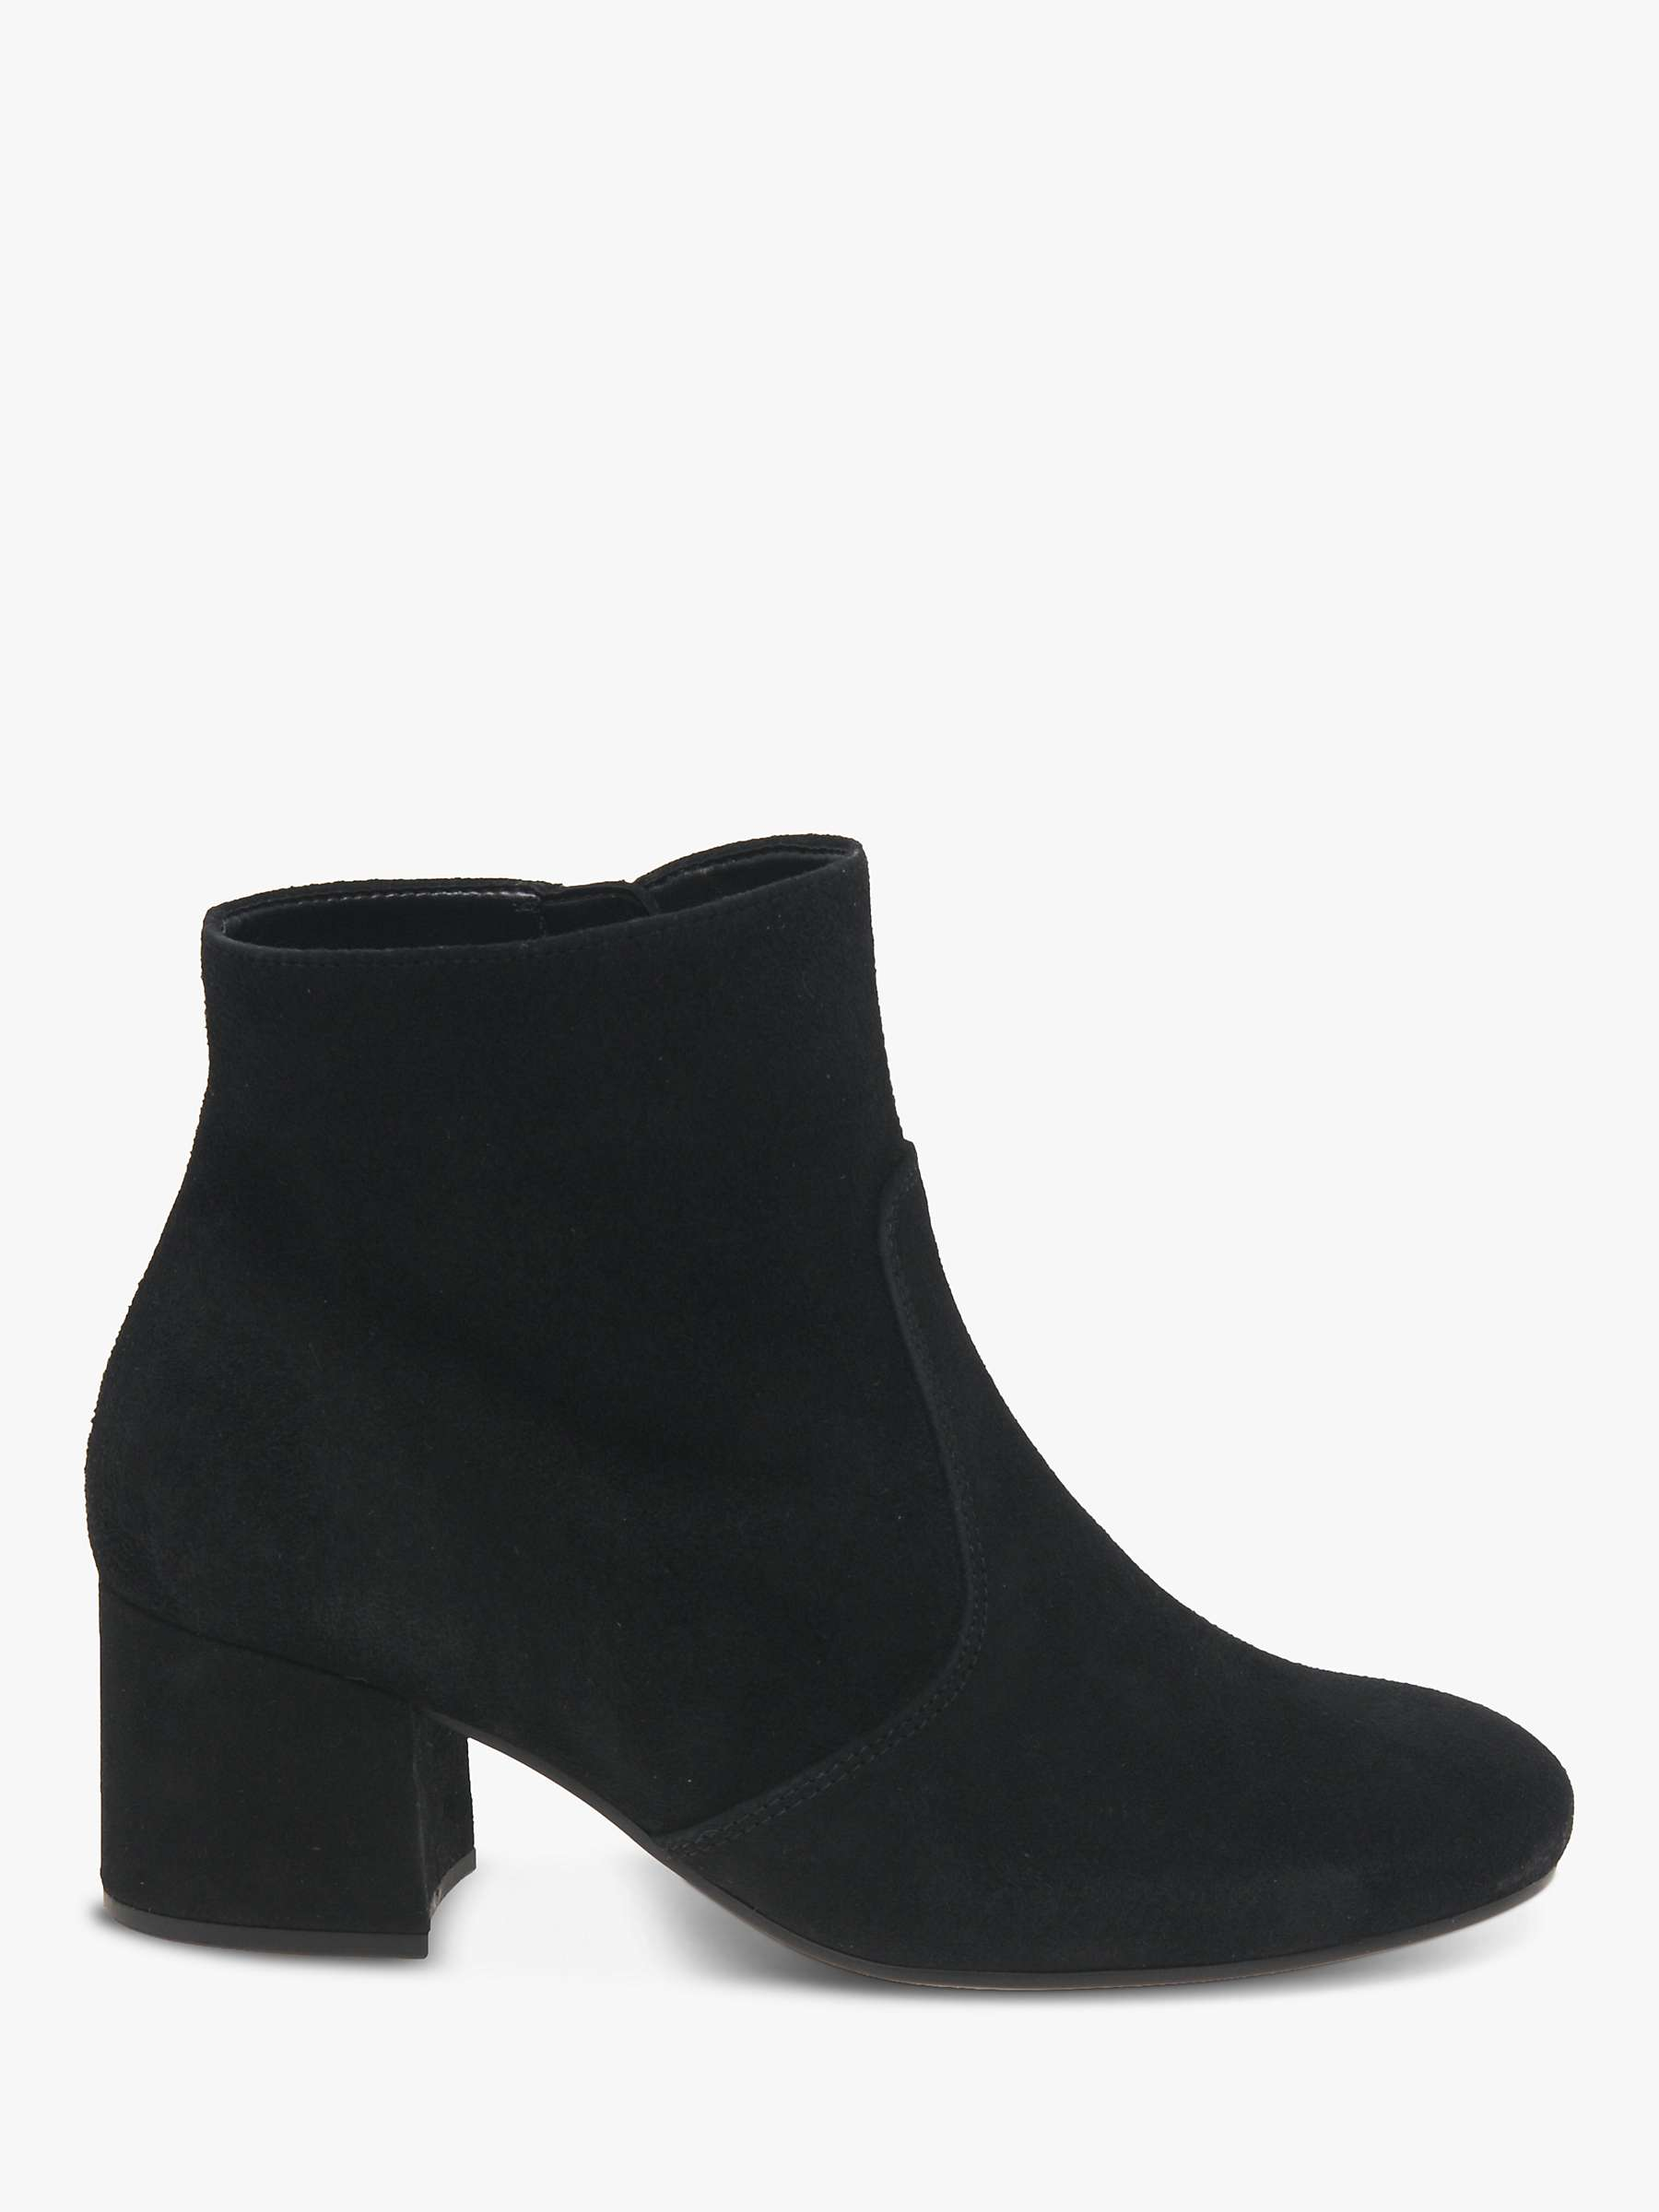 Gabor Cruise Block Heel Suede Ankle Boots, Black by Gabor